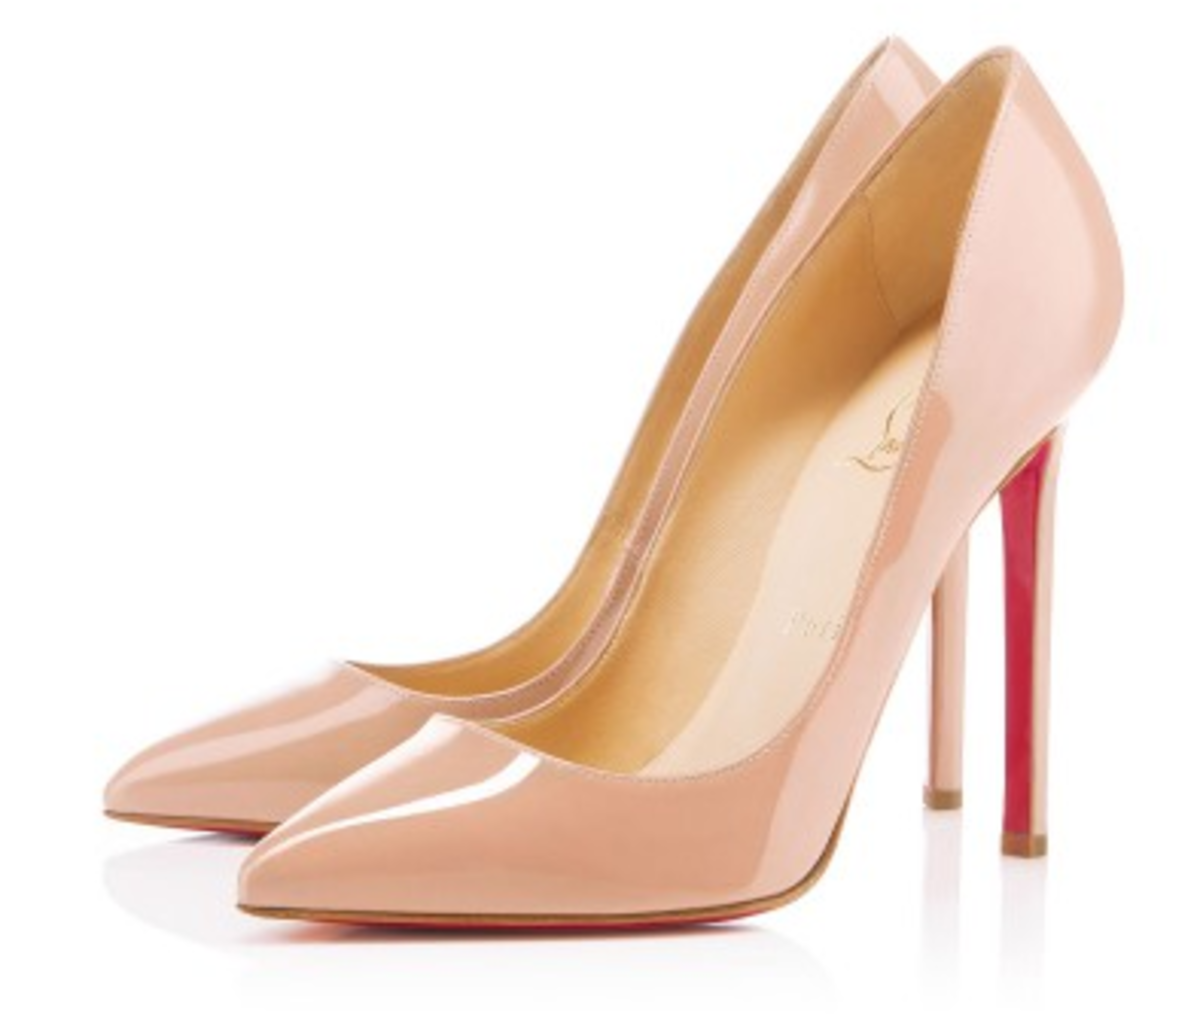 Best and worst shoes for petite women